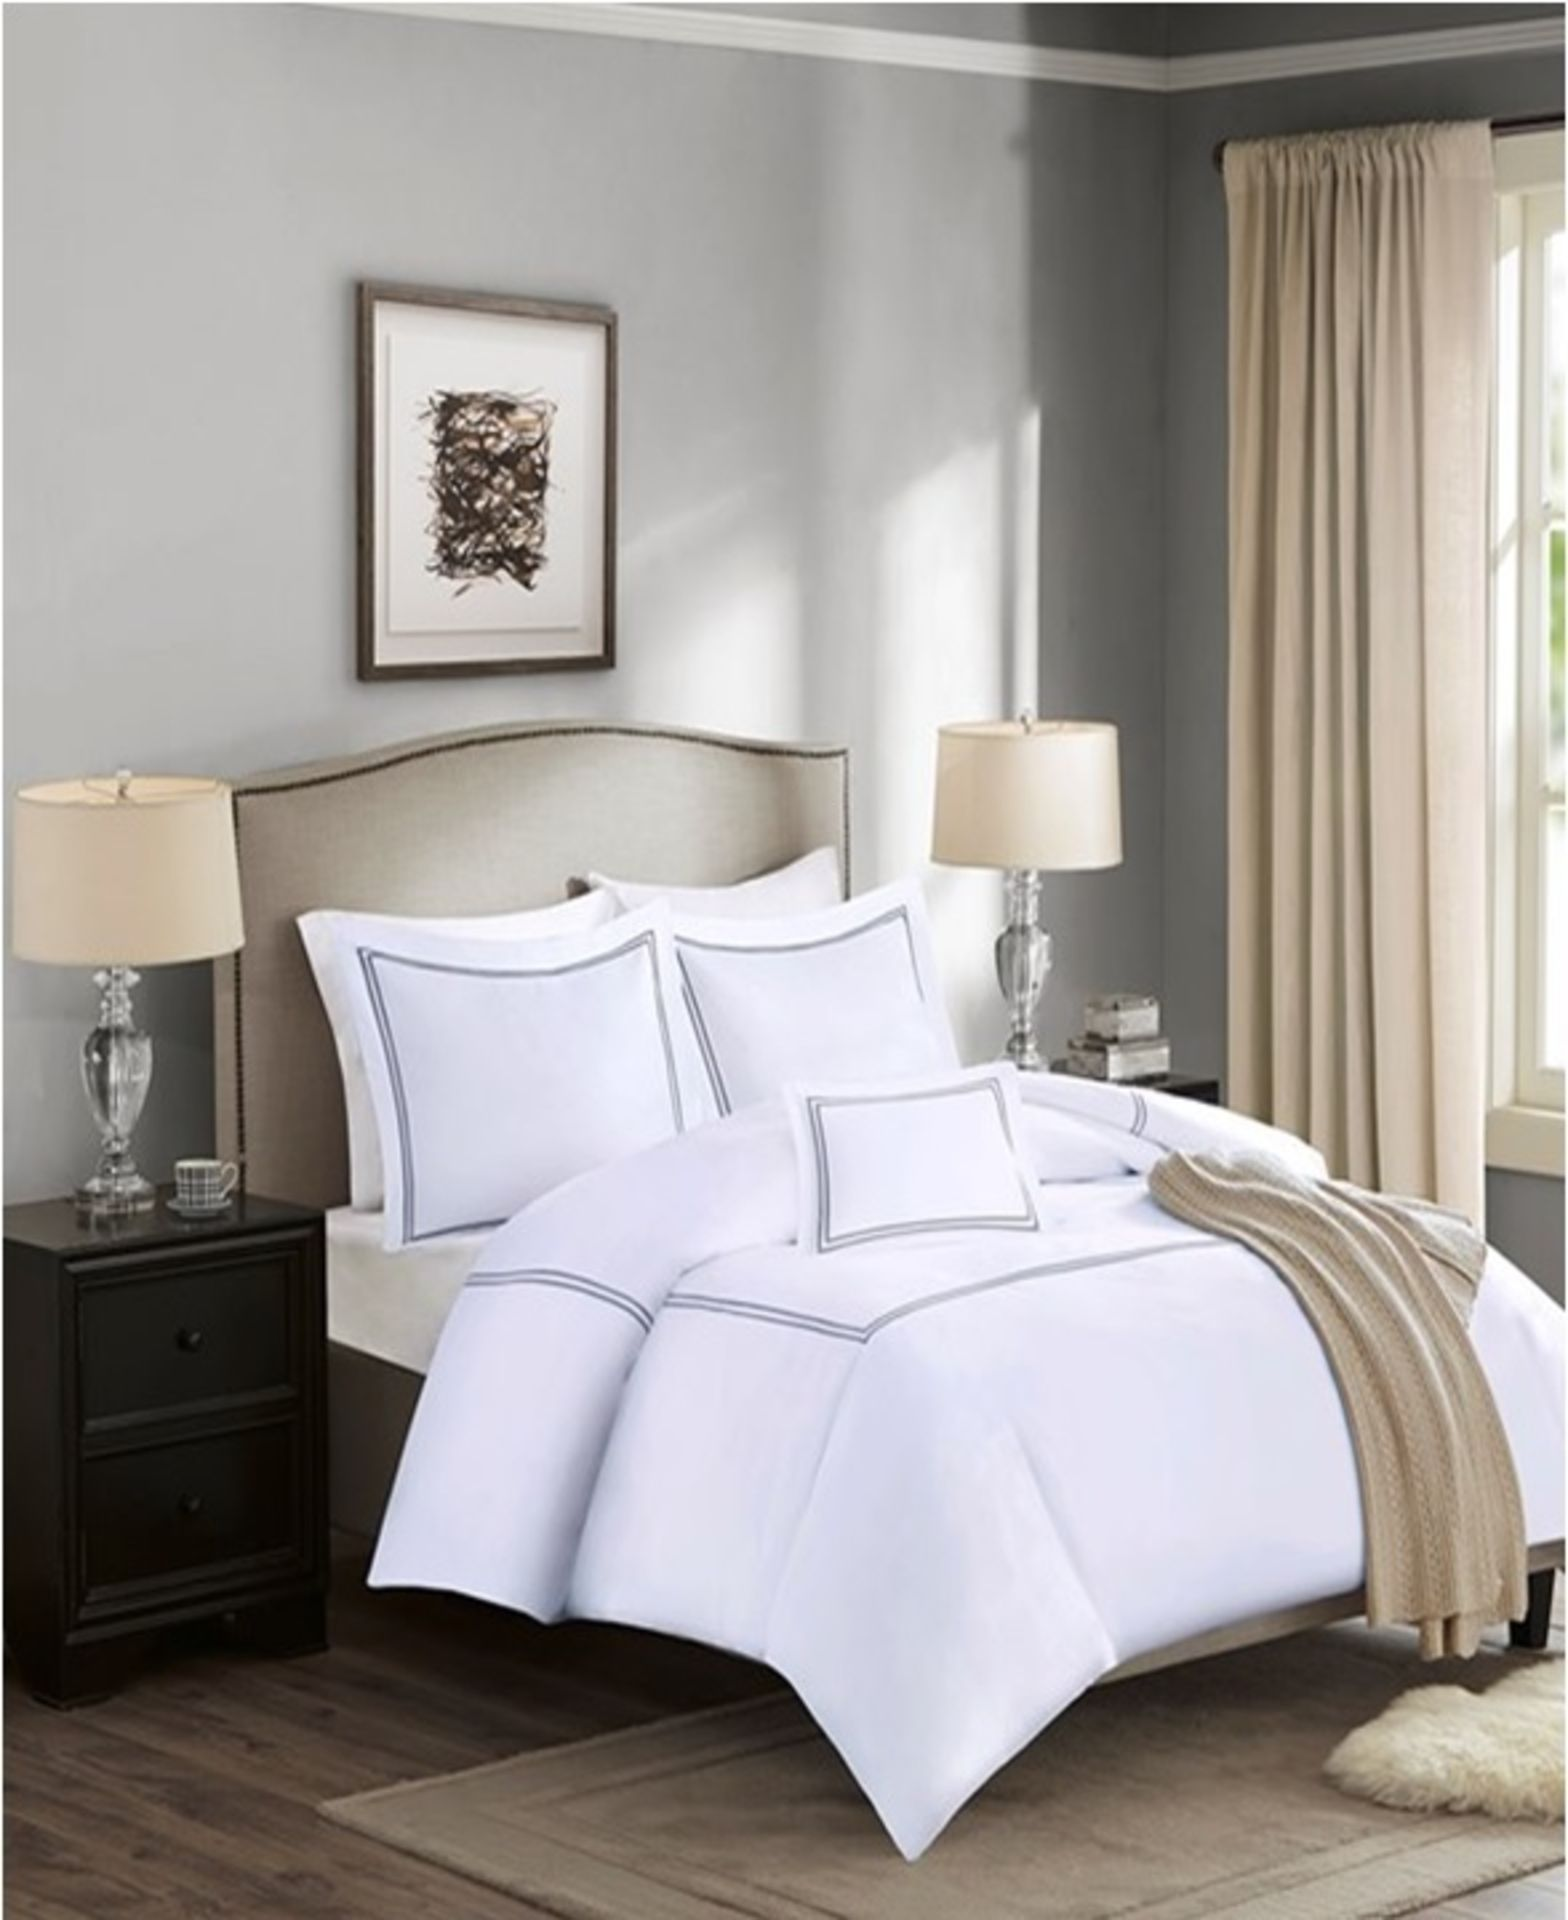 Lot 164 - 1 x Madison Park Luxury Collection King Duvet Set White - Product Code MP12-0199UK (Brand New -